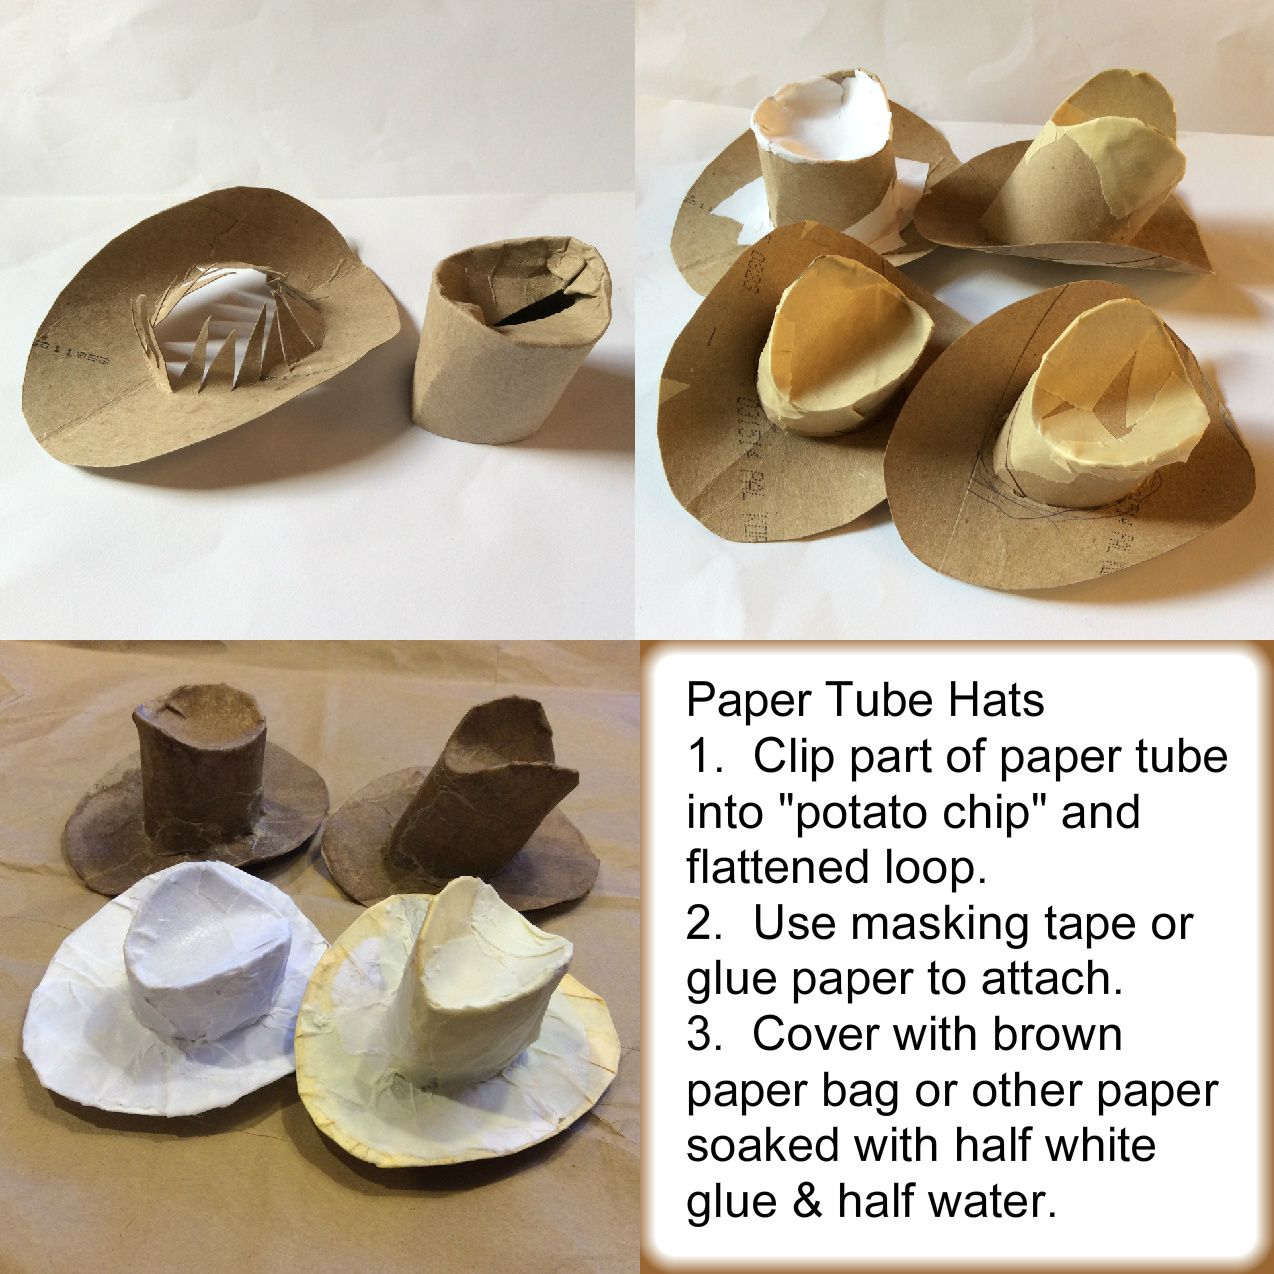 Decided to try the toilet-paper-tube cowboy hats we found on the internet.  Experimented with the brown-paper-bag faux leather rather than paint.  Time-consuming but engaging.